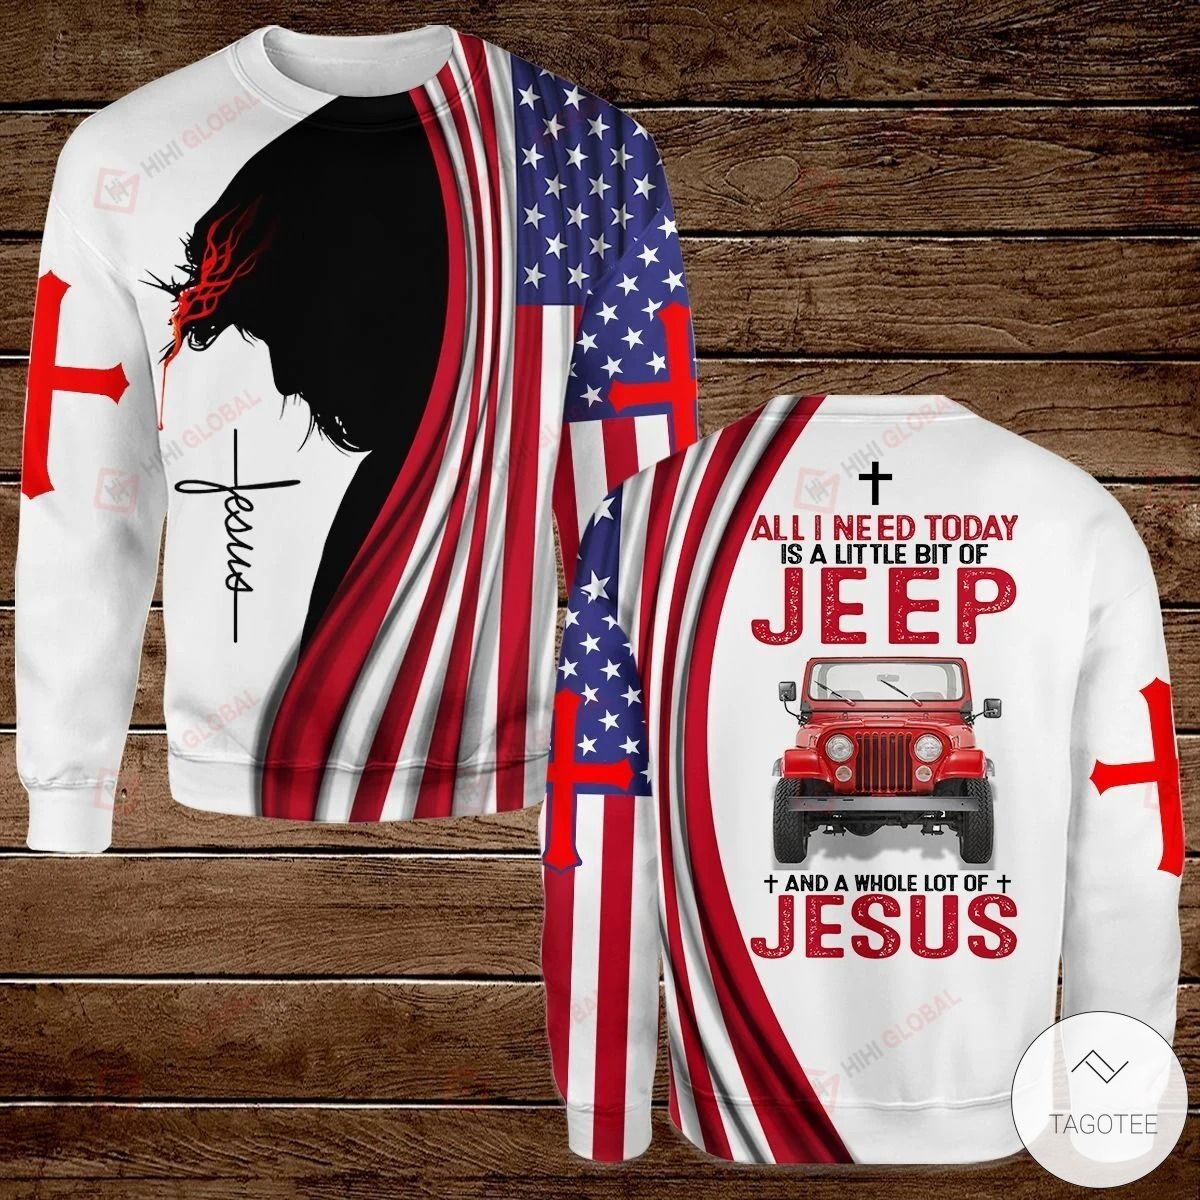 All I Need Today is A Little Bit of Jeep and A Whole Lot of Jesus Hawaiian shirt, hoodies and sweatshirt3